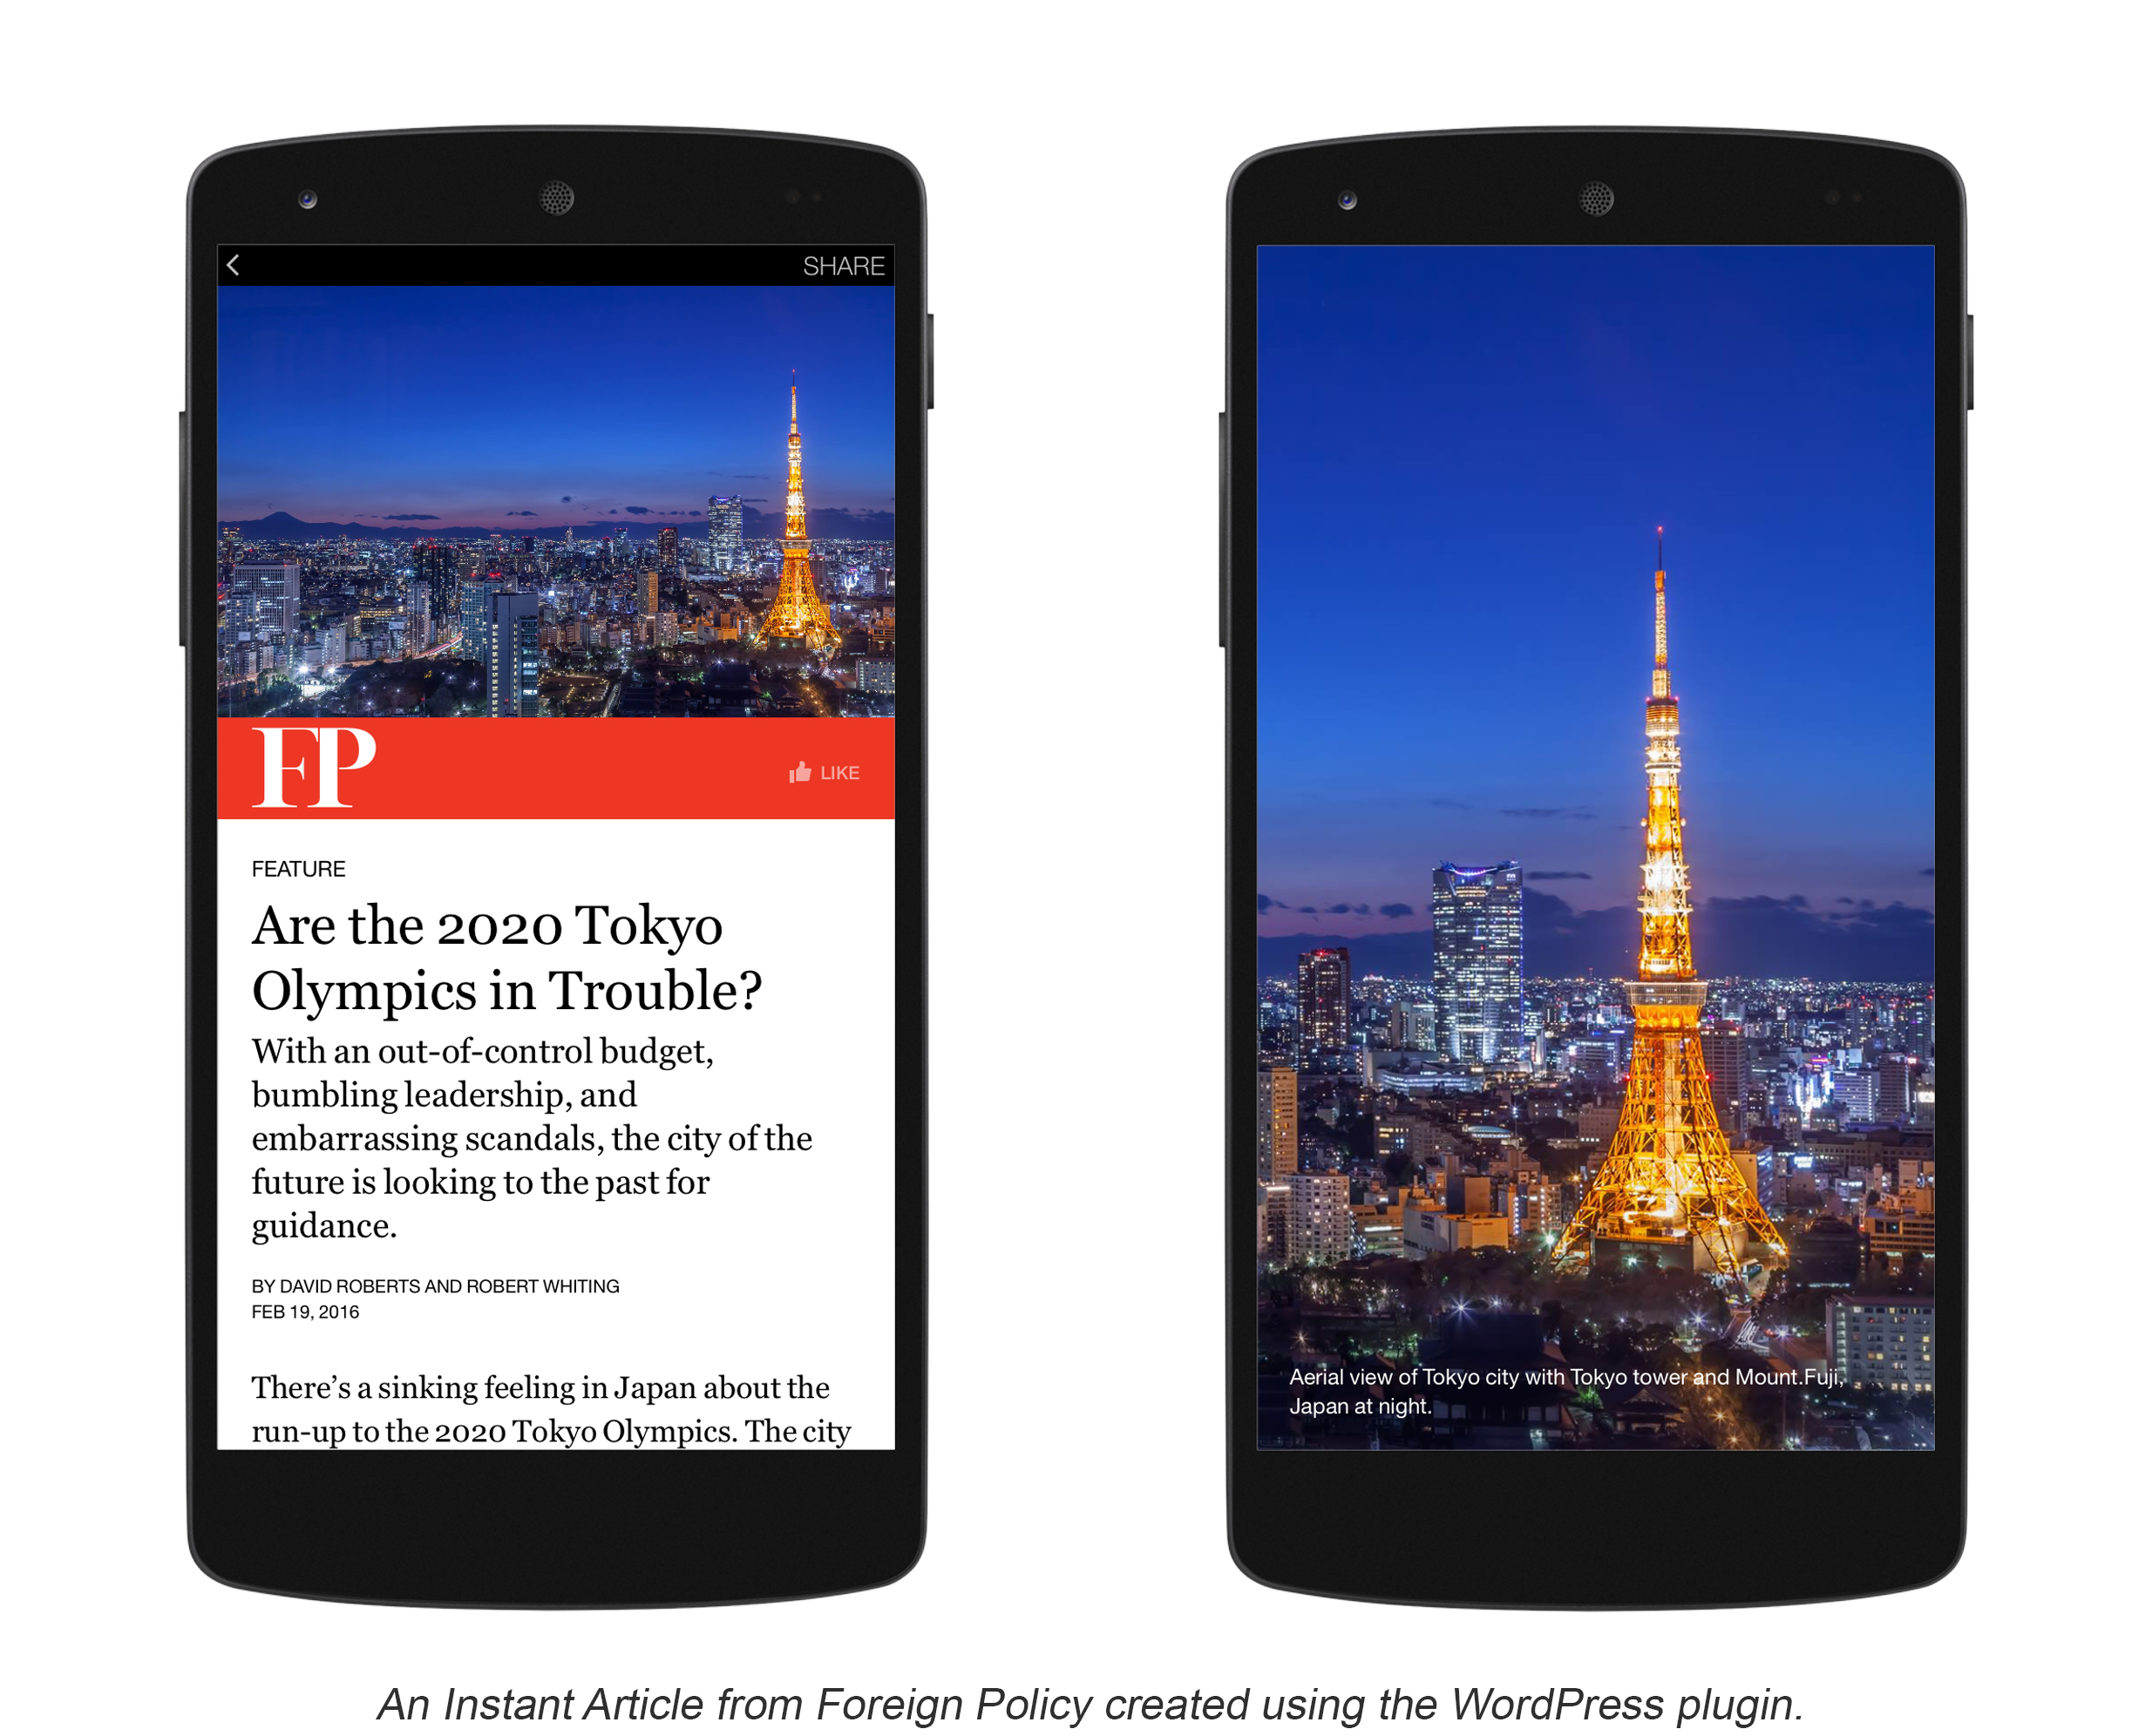 Instant Articles ForeignPolicy_Quelle facebook Pressekit